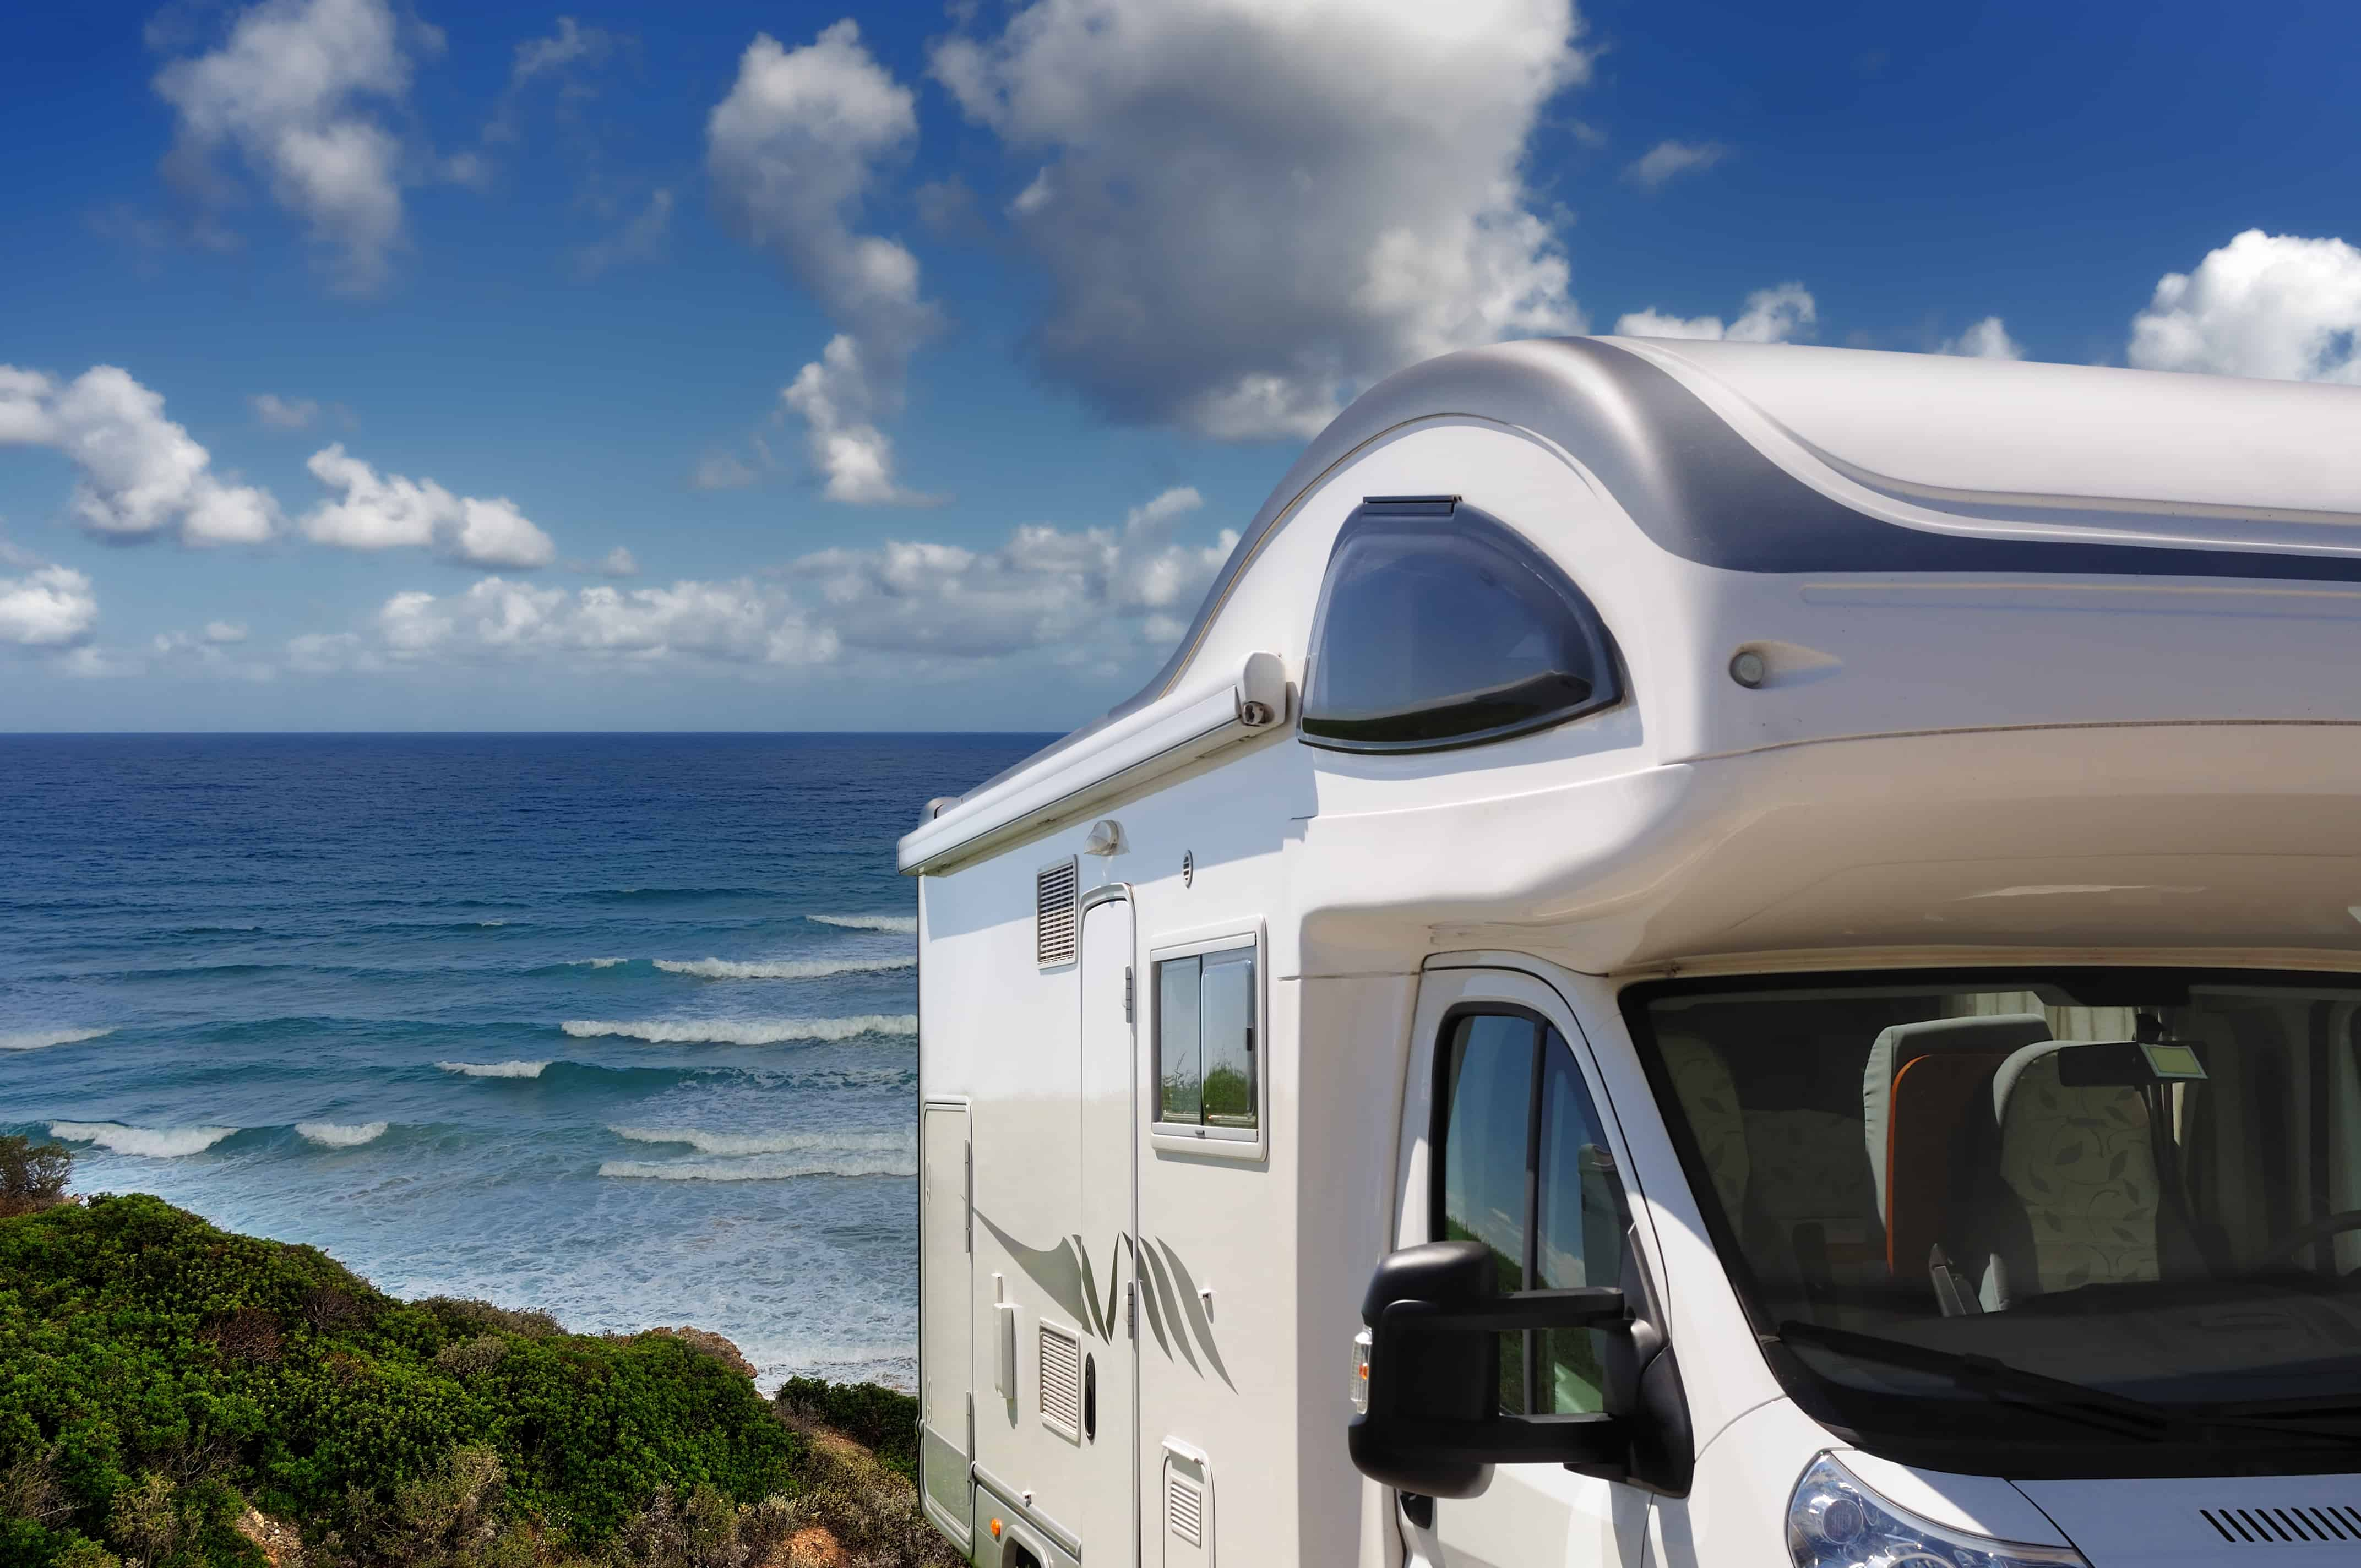 Camping Car parked on the beach.